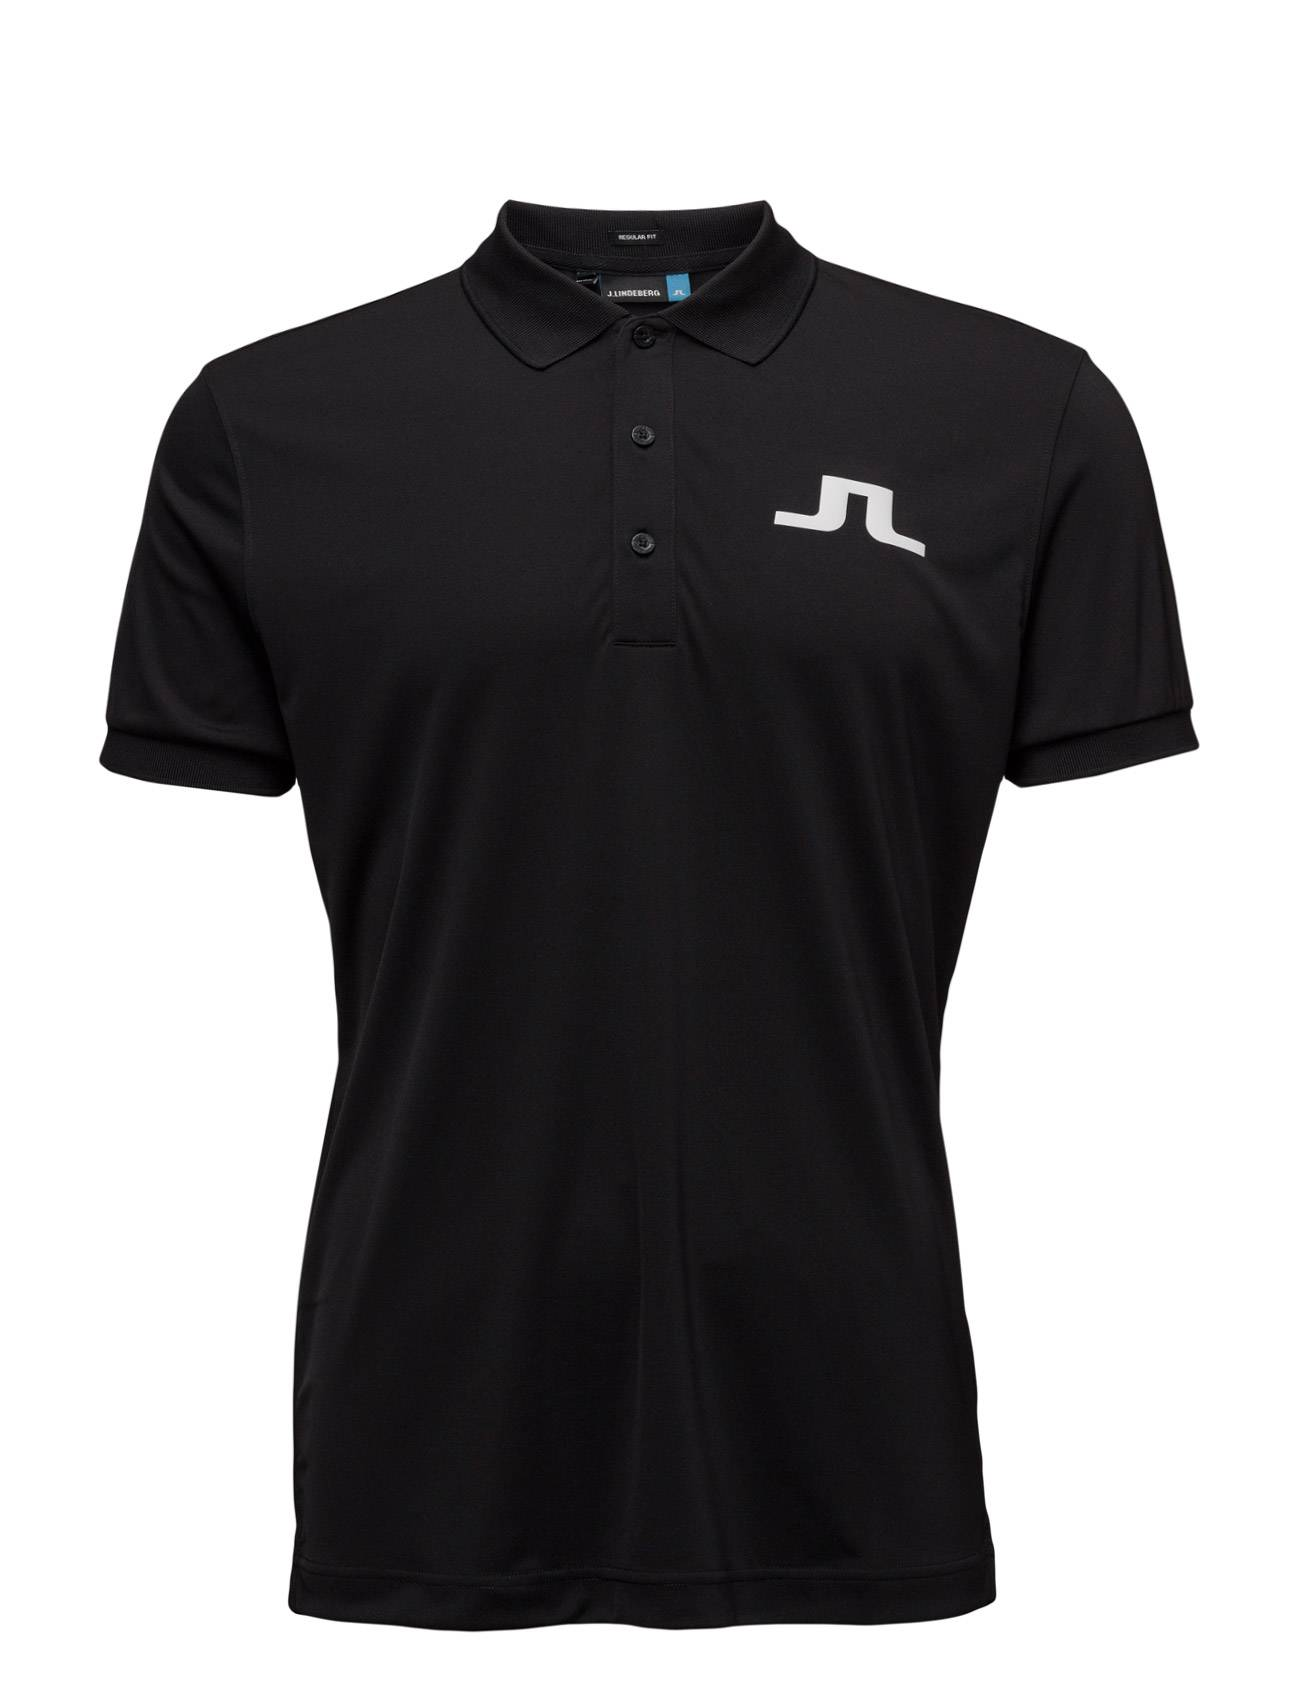 J. Lindeberg Golf M Big Bridge Reg Tx Jersey